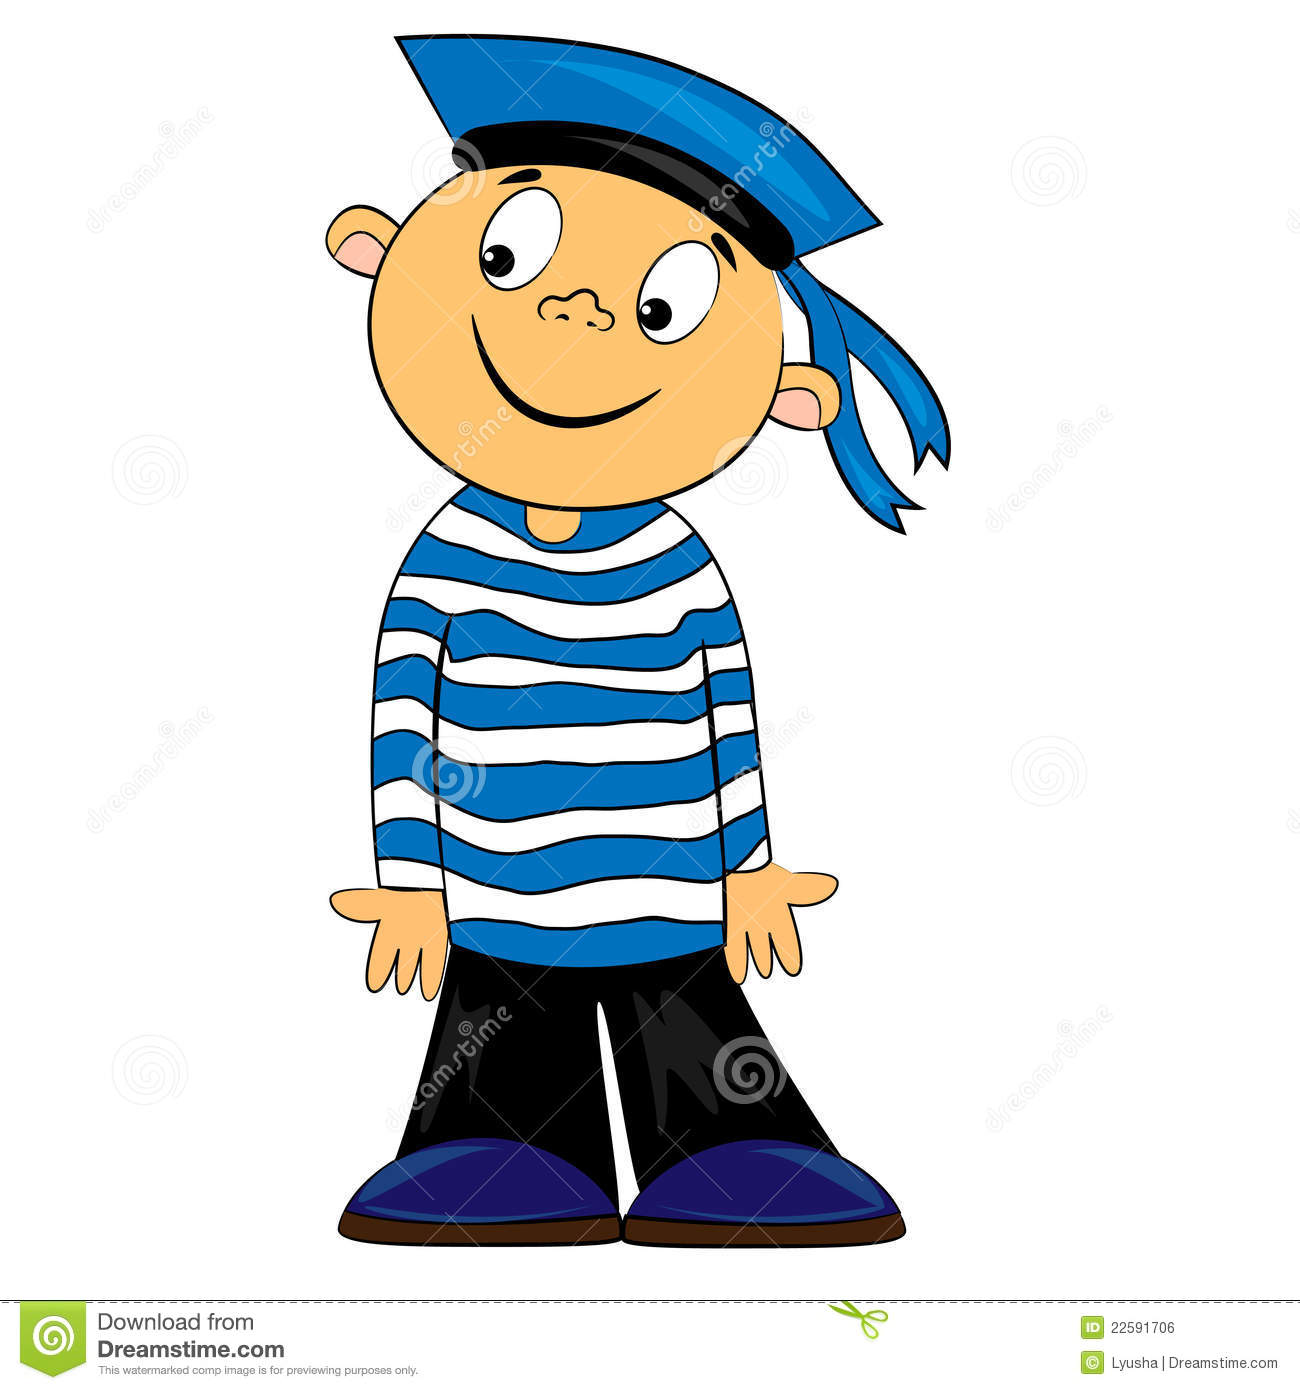 Cartoon Sailor Kid In Striped Shirt  Boy Character Isolated On White